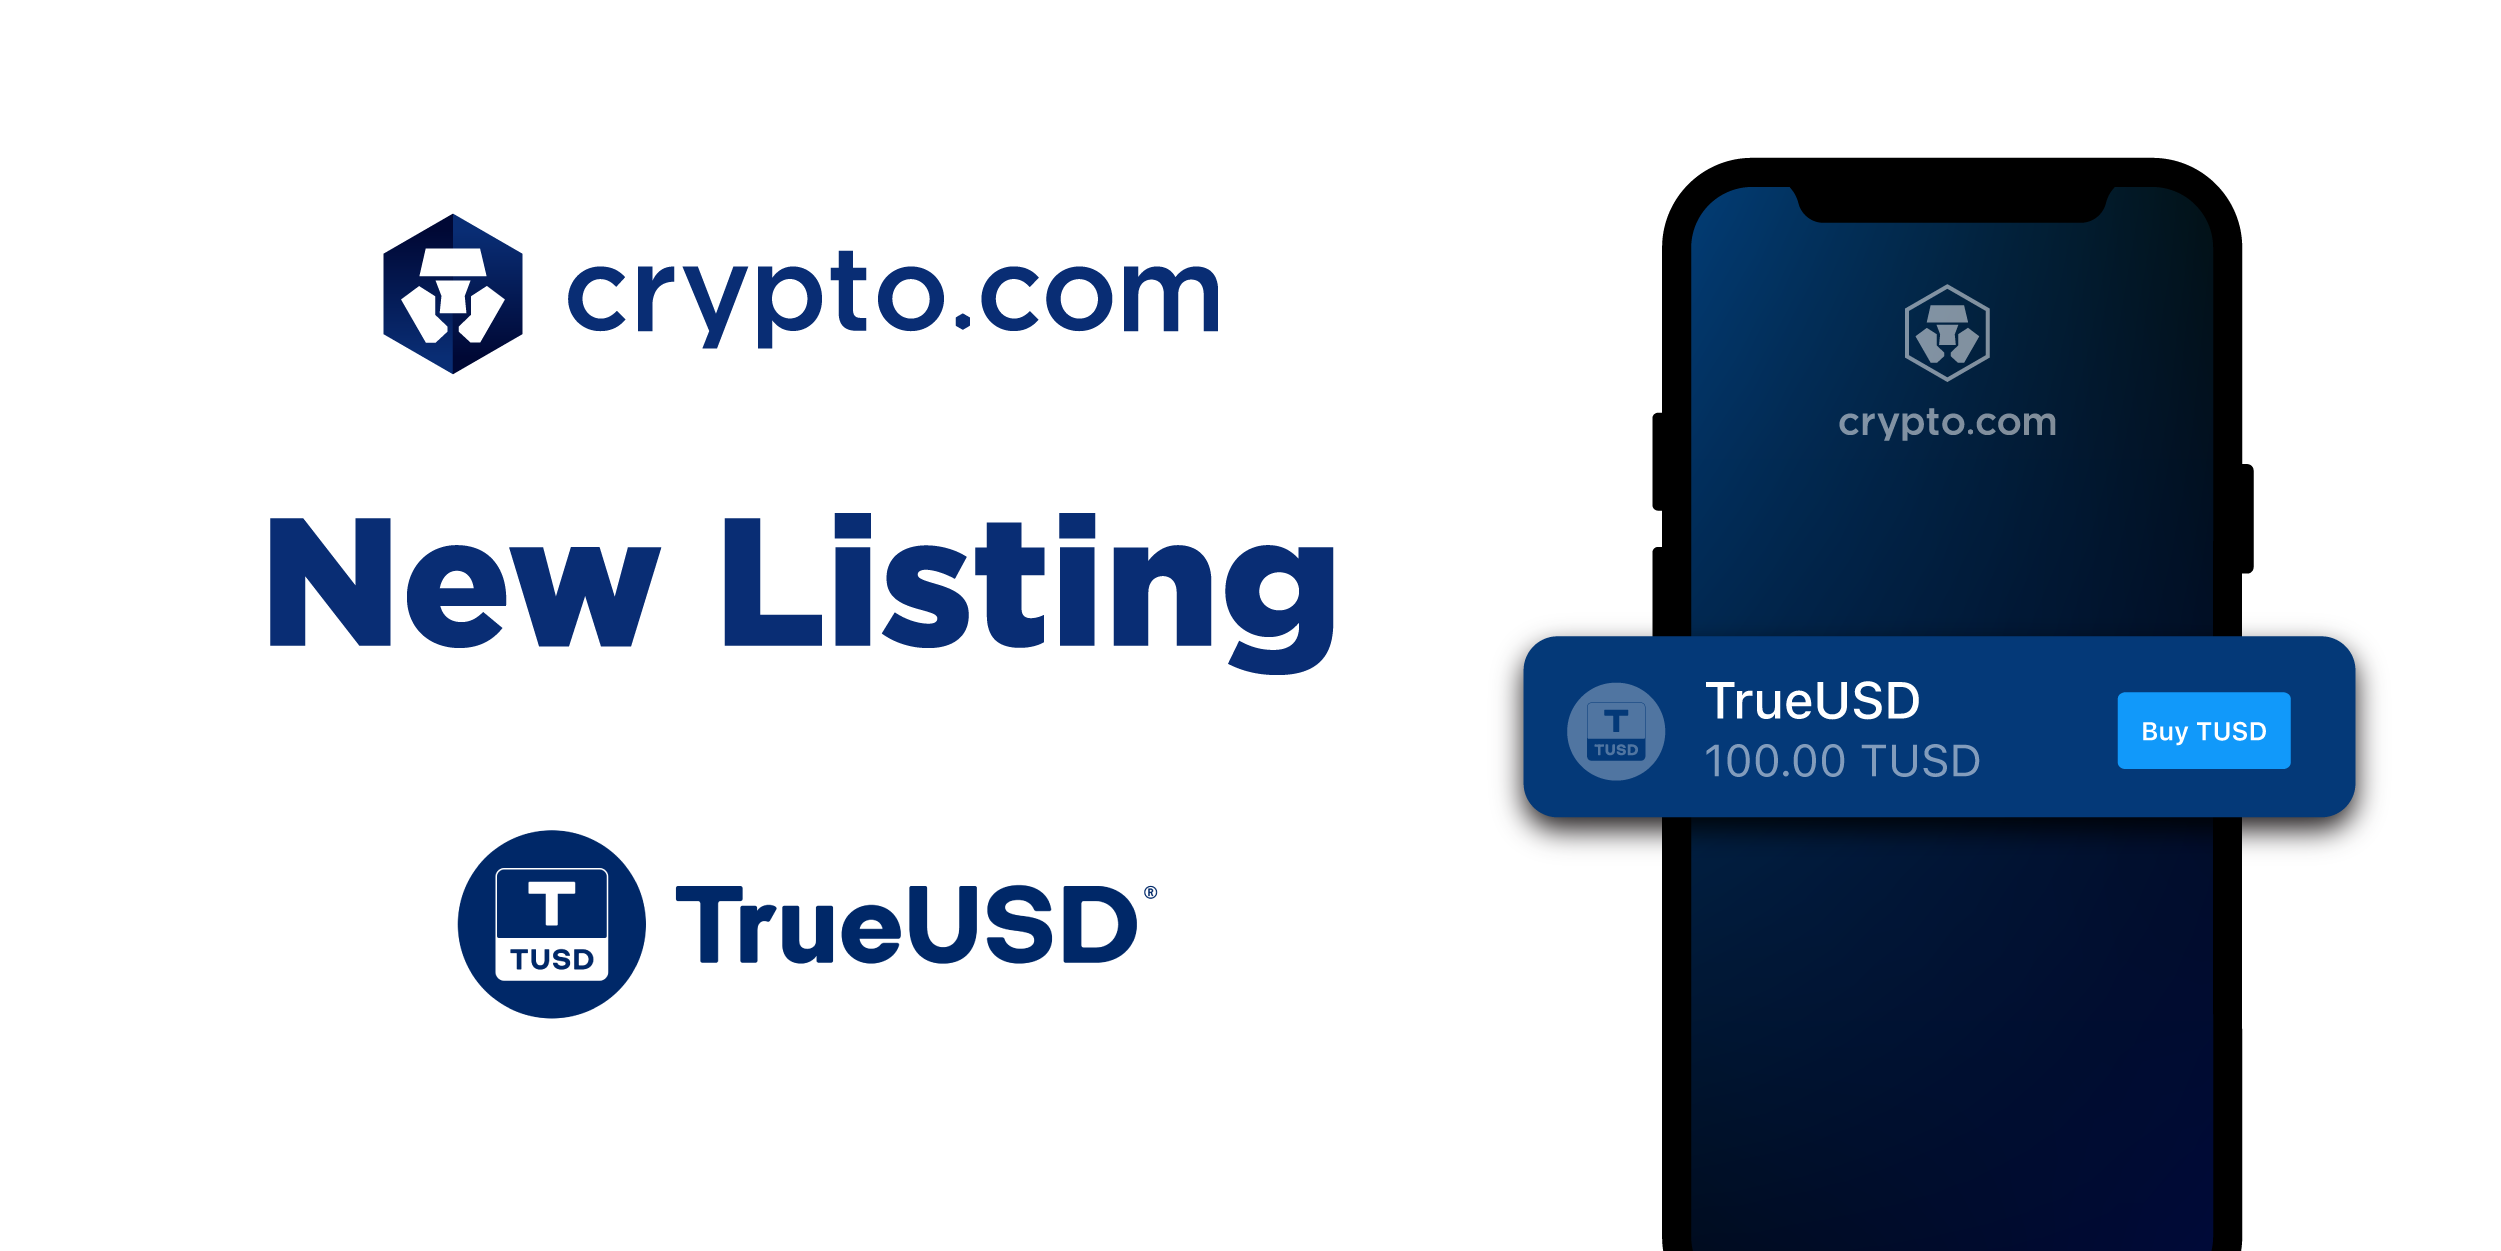 where to buy tokens cryptocurrency